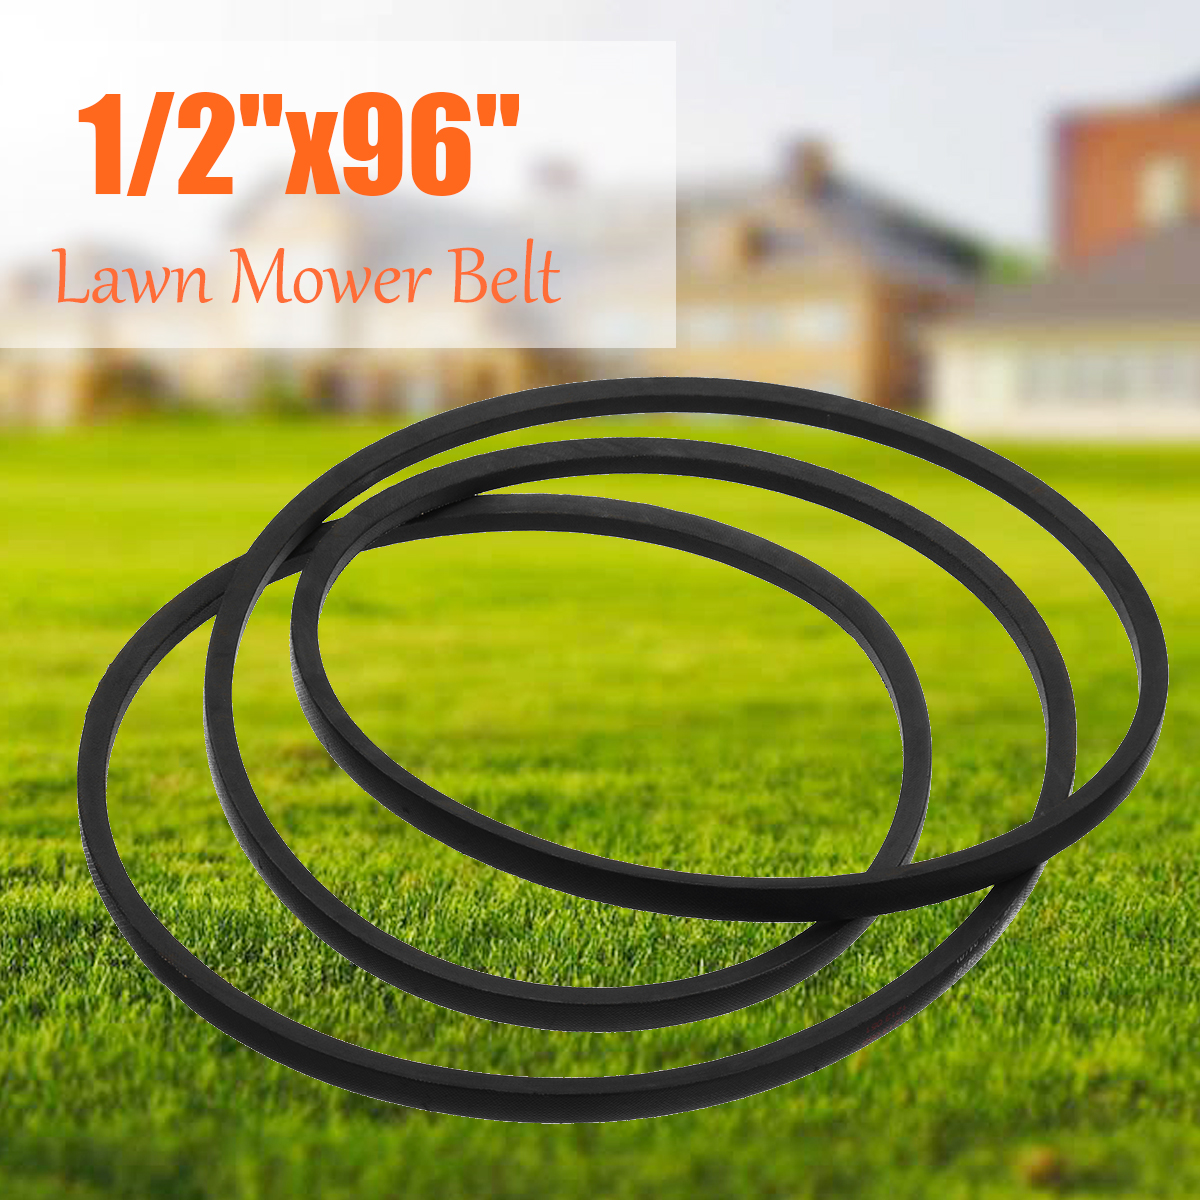 small resolution of for yard machine lawn mower belts tractor drive v belt for lawn mover parts 13mm 1 2 x 96 k type vee rubber belt for industry